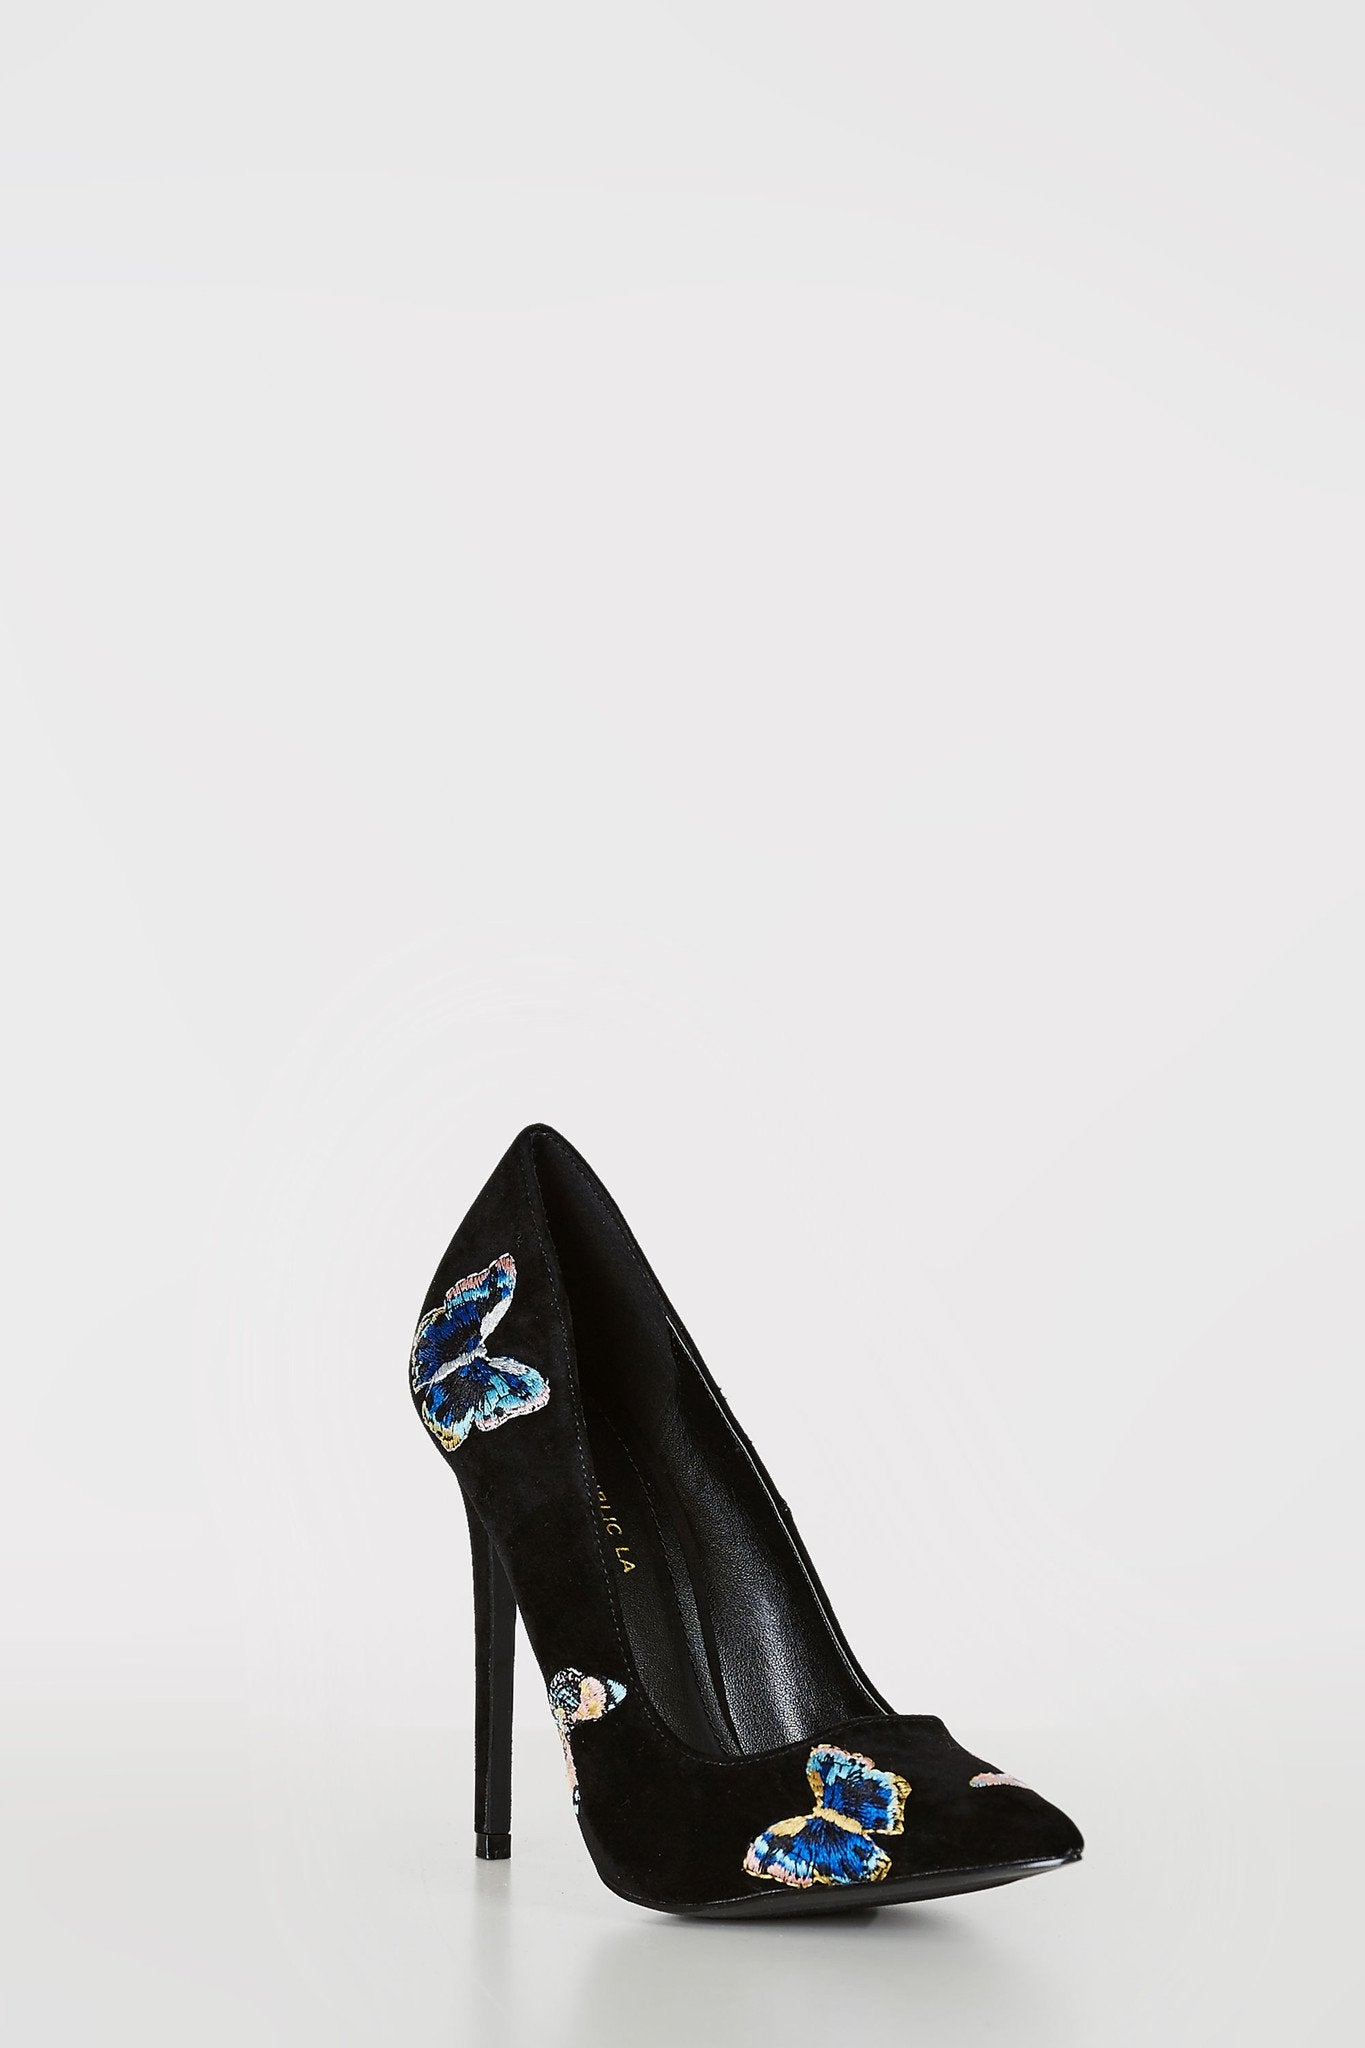 Pointed toe suede pumps with butterfly patches.